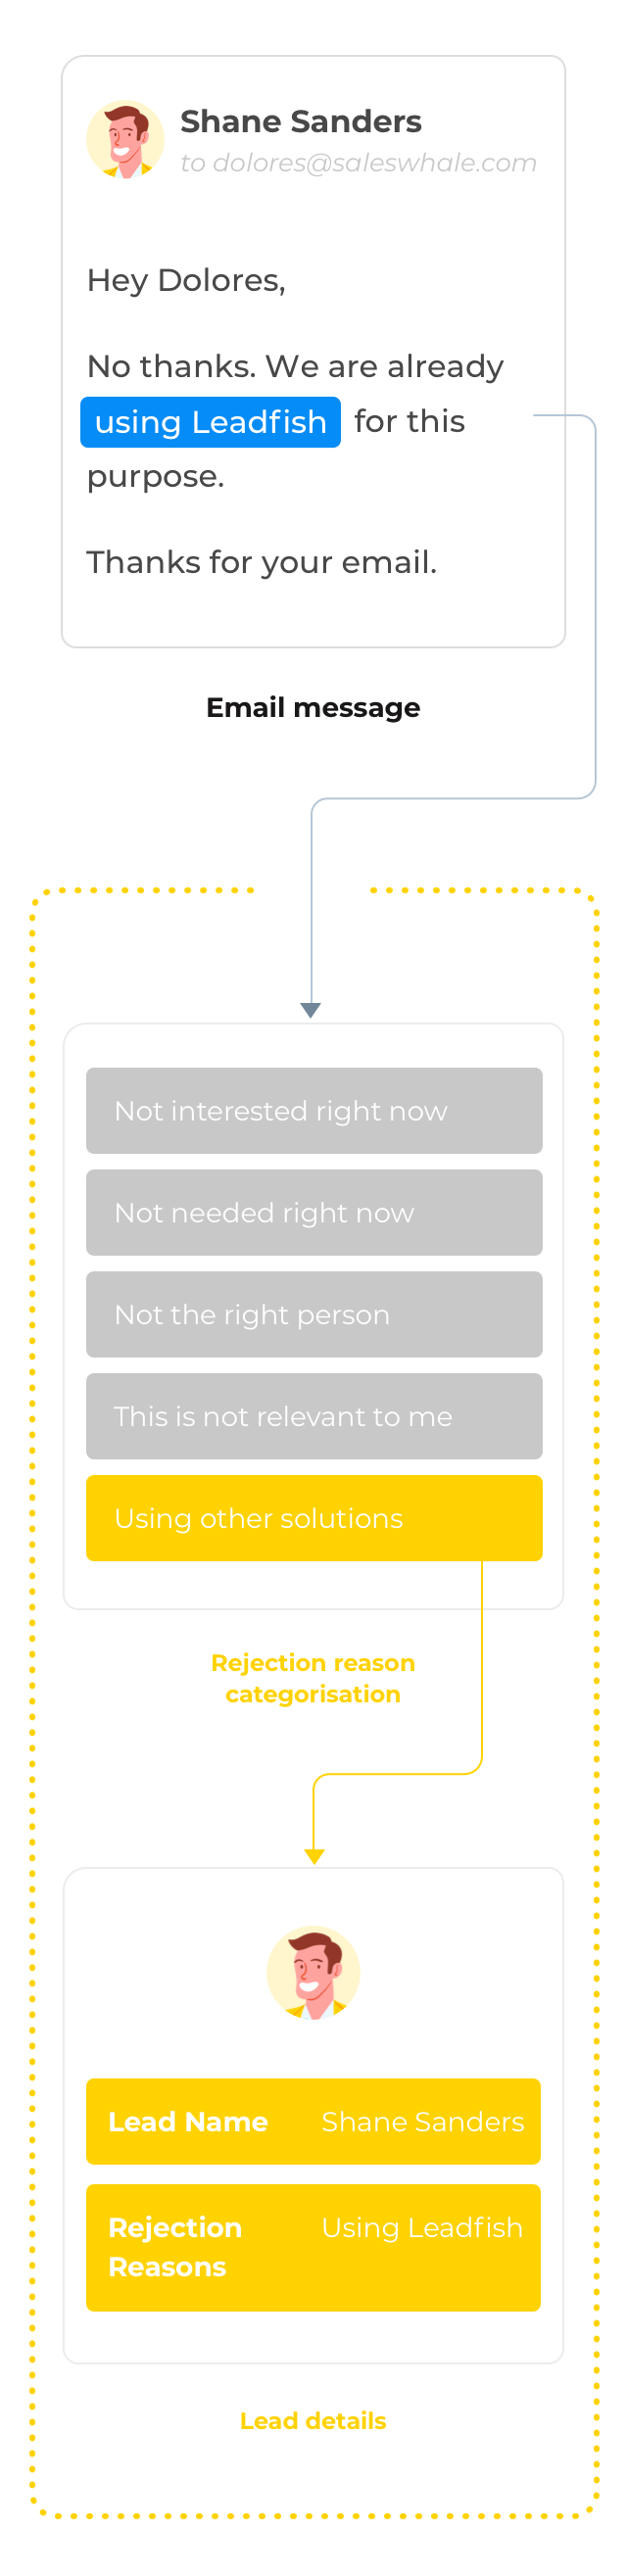 Rejection reasons diagram